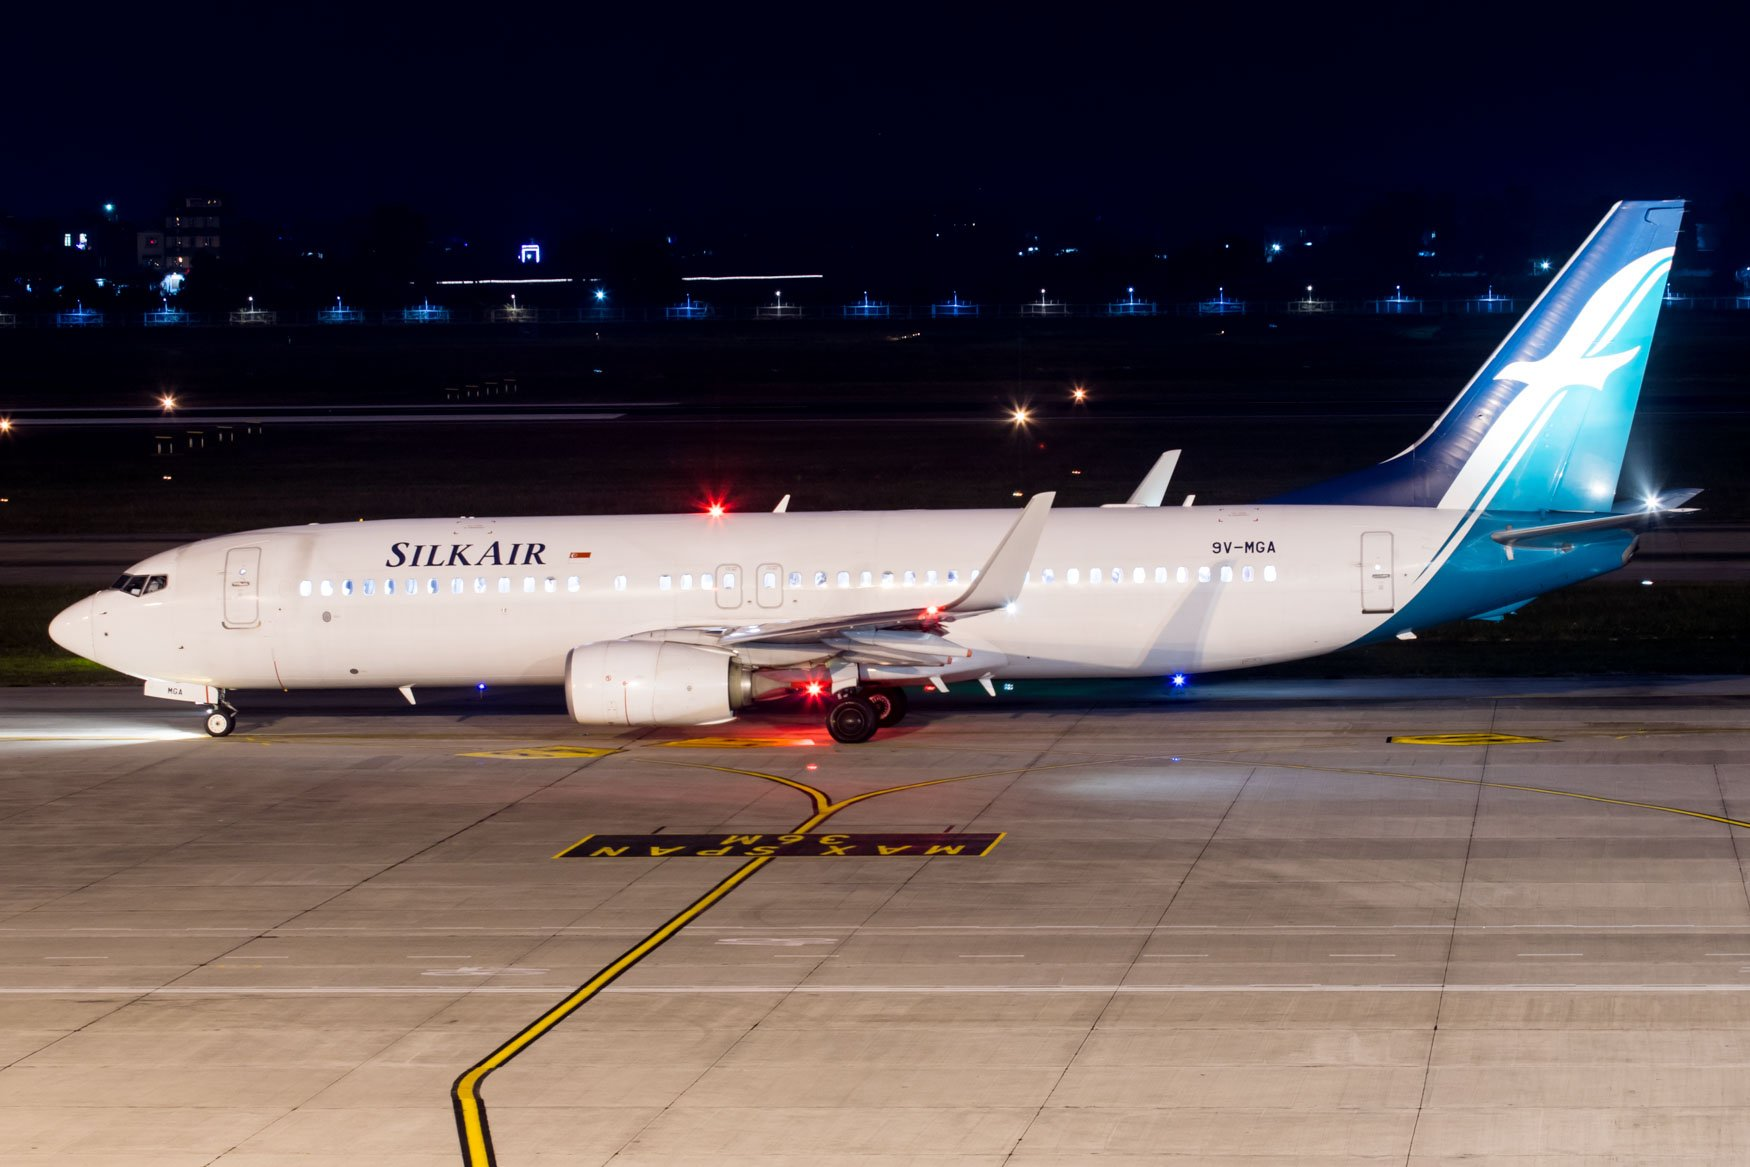 Silk Air 737 Night at Hanoi